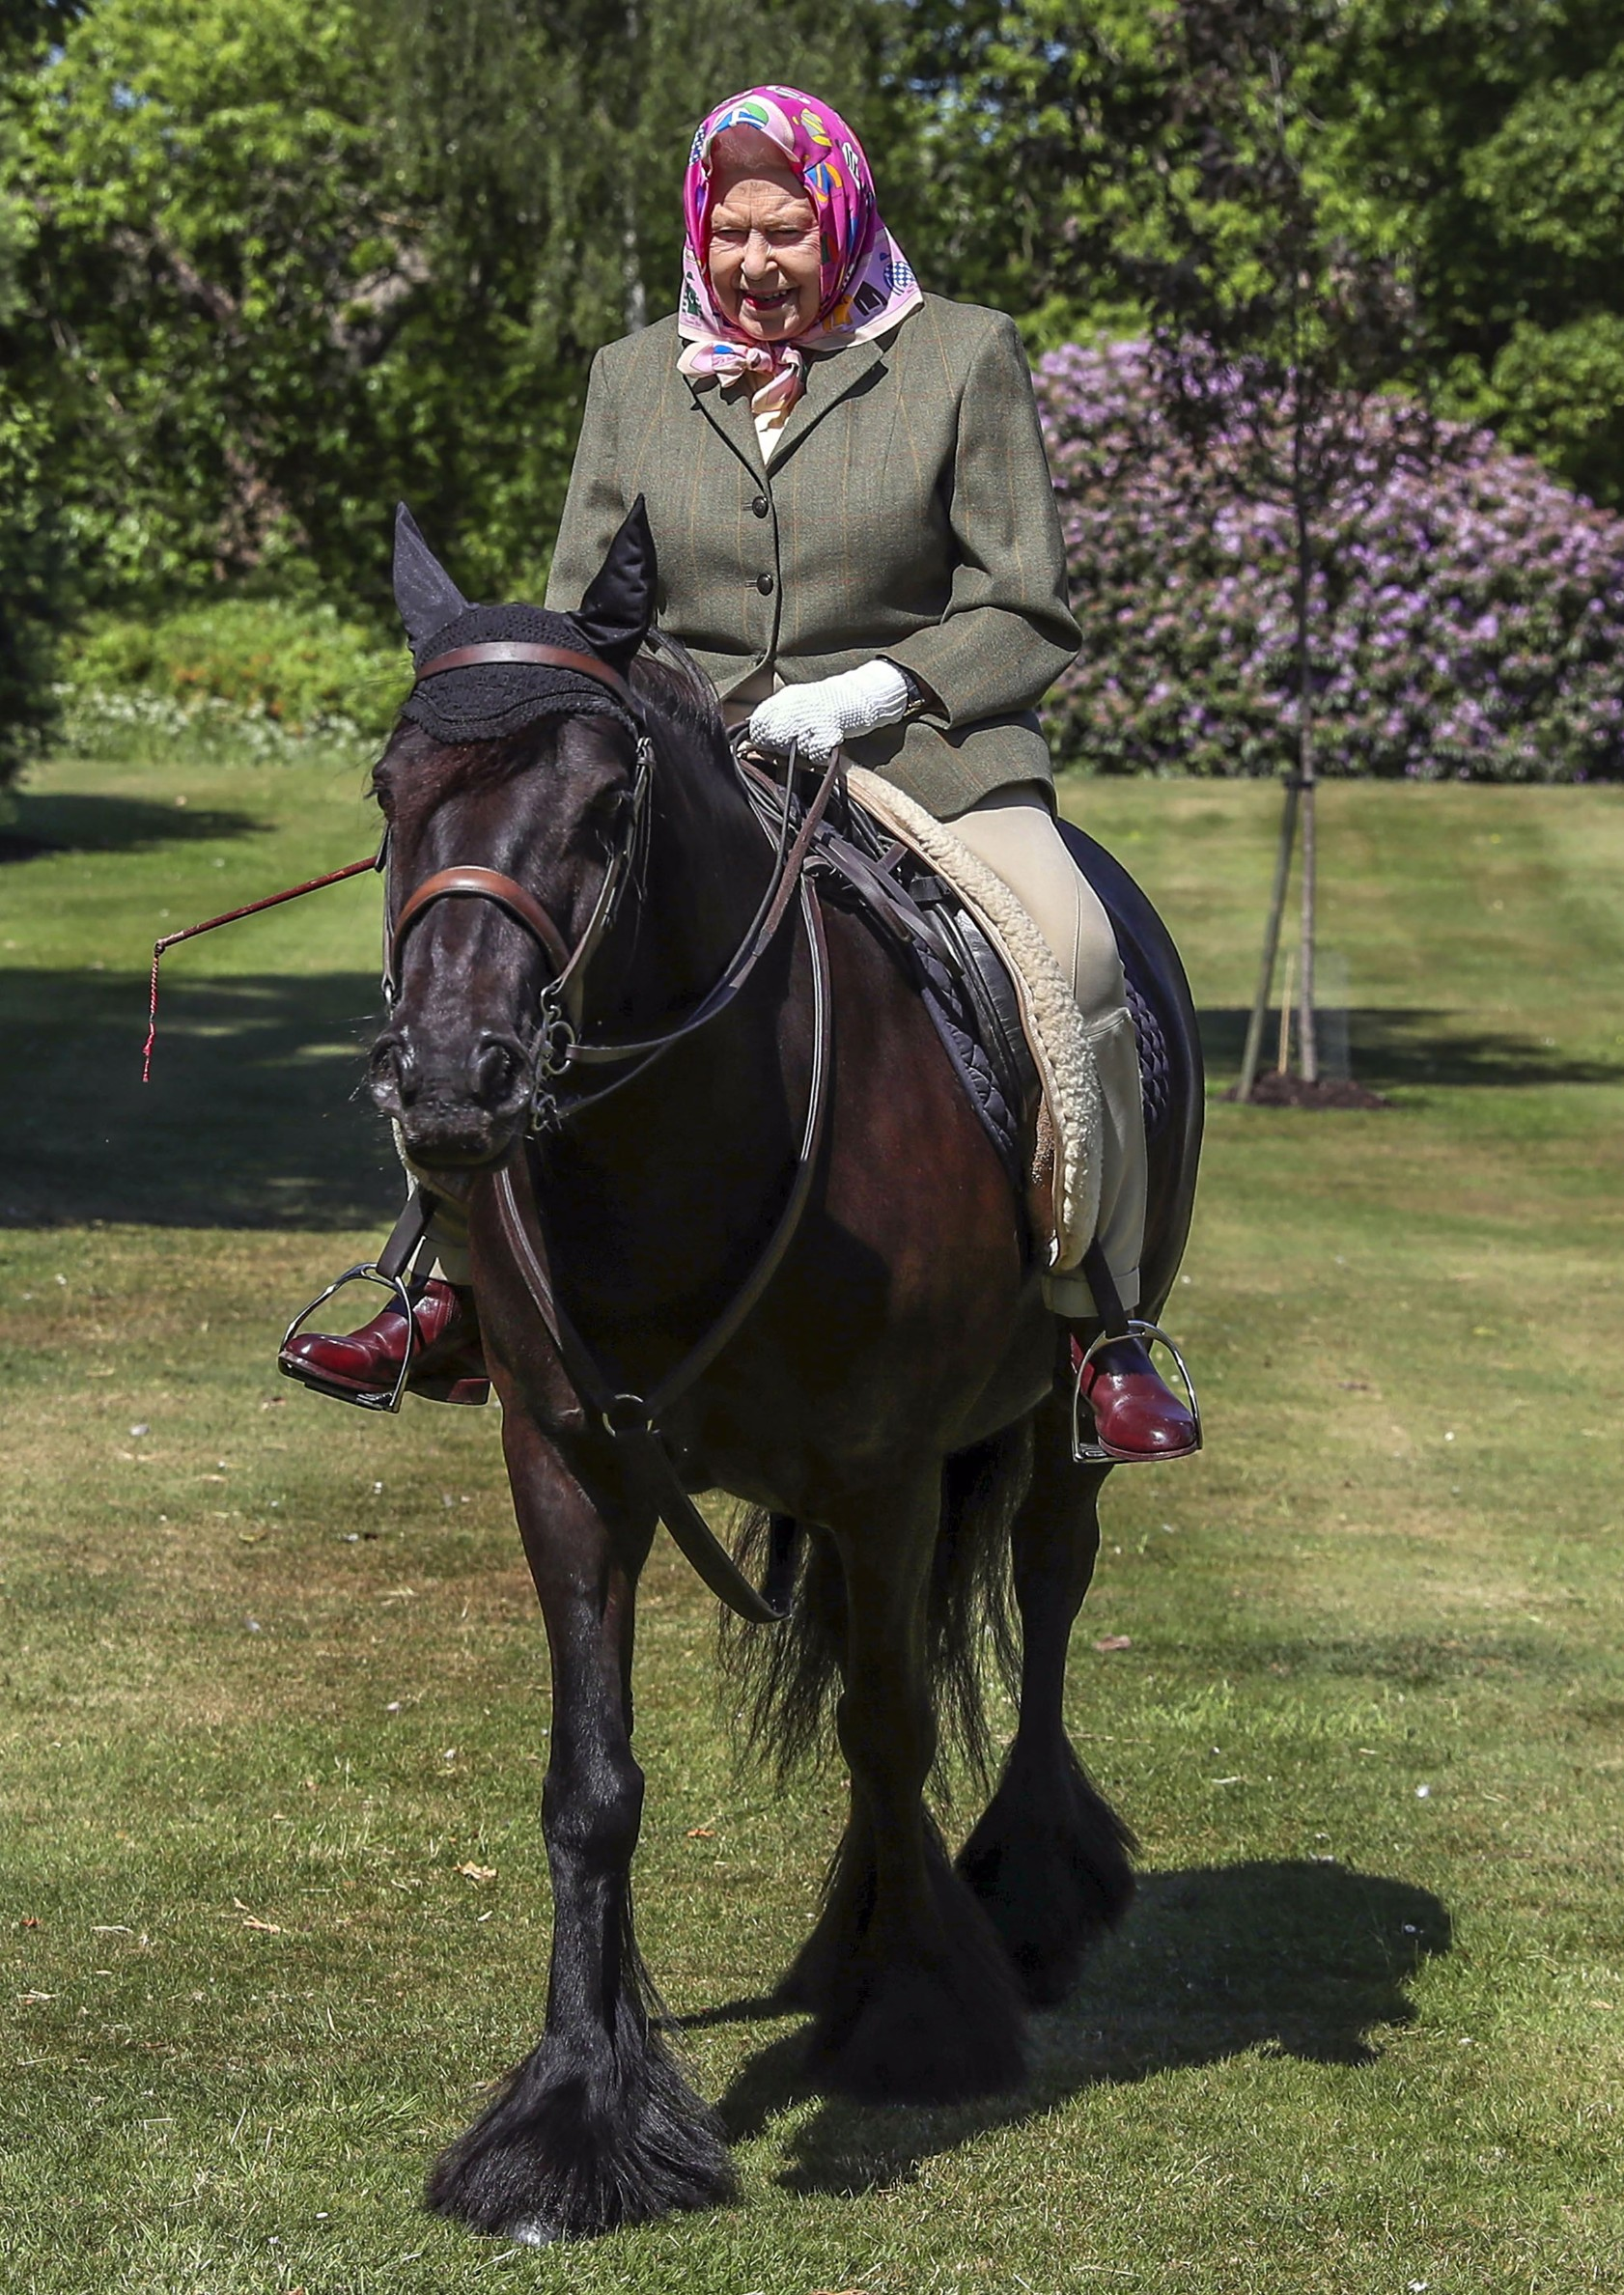 May 31, 2020, Windsor, United Kingdom: Image licensed to i-Images Picture Agency. 31/05/2020. Windsor, United Kingdom.  Queen Elizabeth II rides Balmoral Fern, a 14-year-old Fell Pony, in Windsor Home Park over the weekend. The Queen has been in residence at Windsor Castle during the coronavirus pandemic.,Image: 524422533, License: Rights-managed, Restrictions: * China, France, Italy, Spain, Taiwan and UK Rights OUT *, Model Release: no